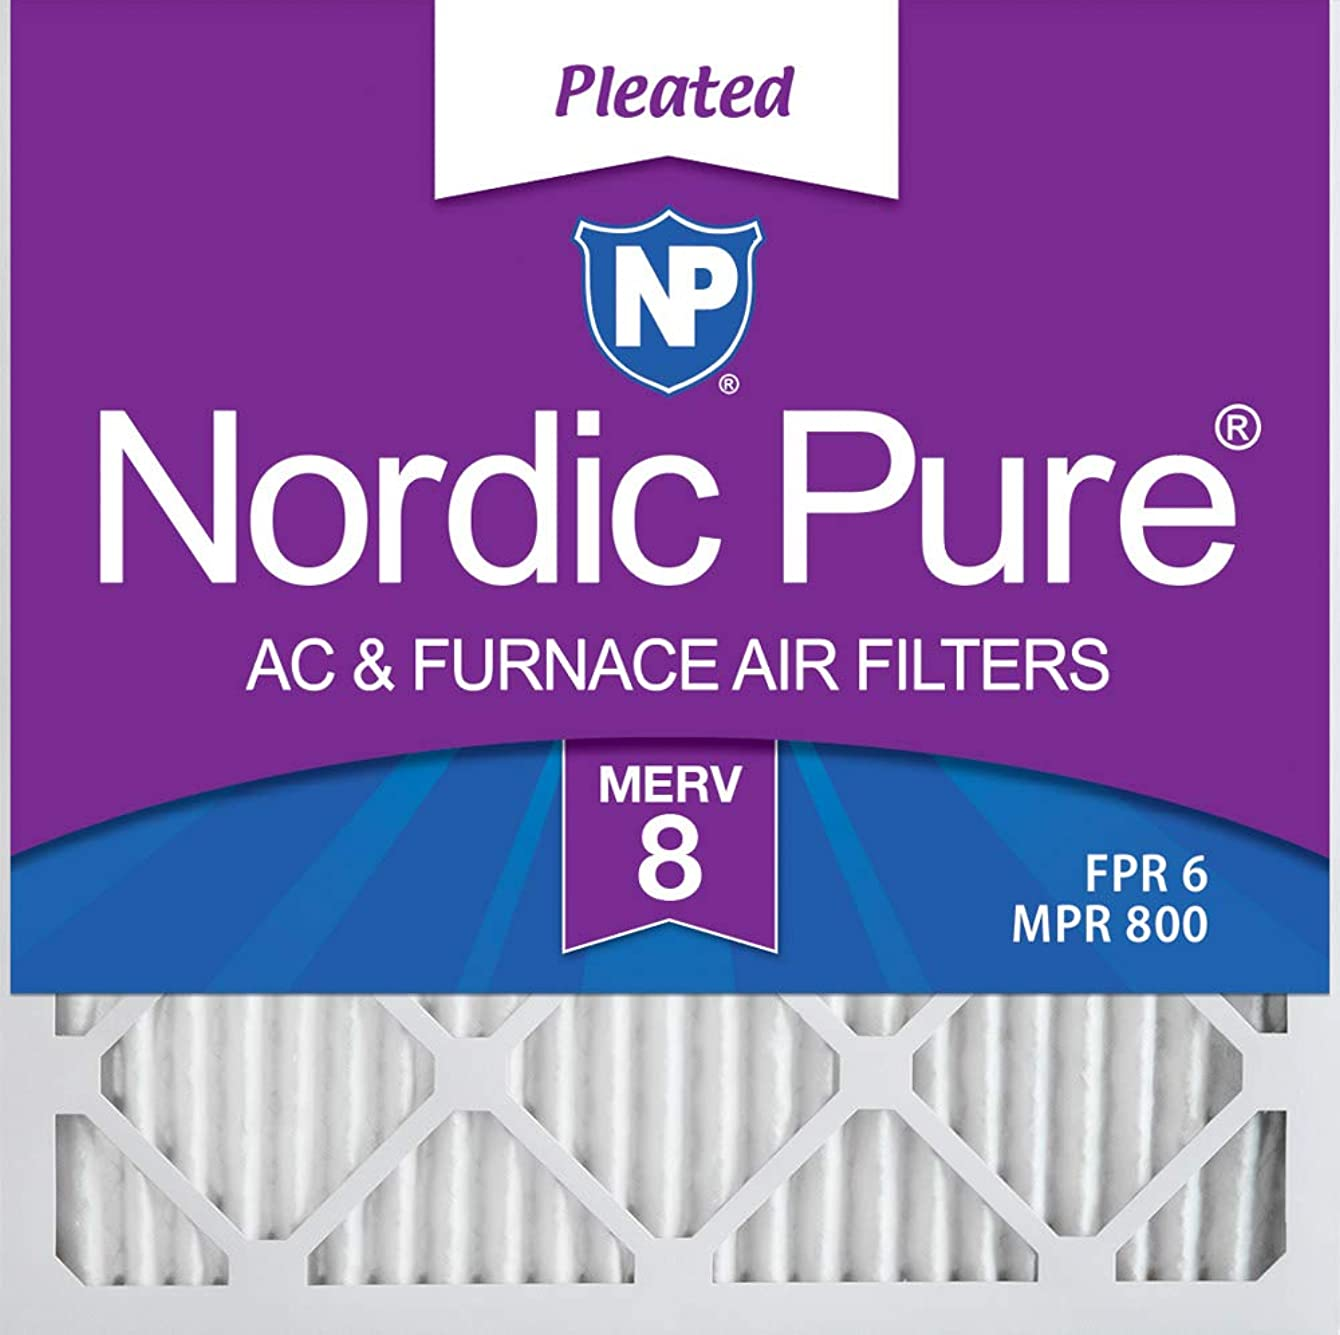 Nordic Pure 20x20x1 MERV 8 Pleated AC Furnace Air Filters, 20x20x1M8-6, 6 Pack